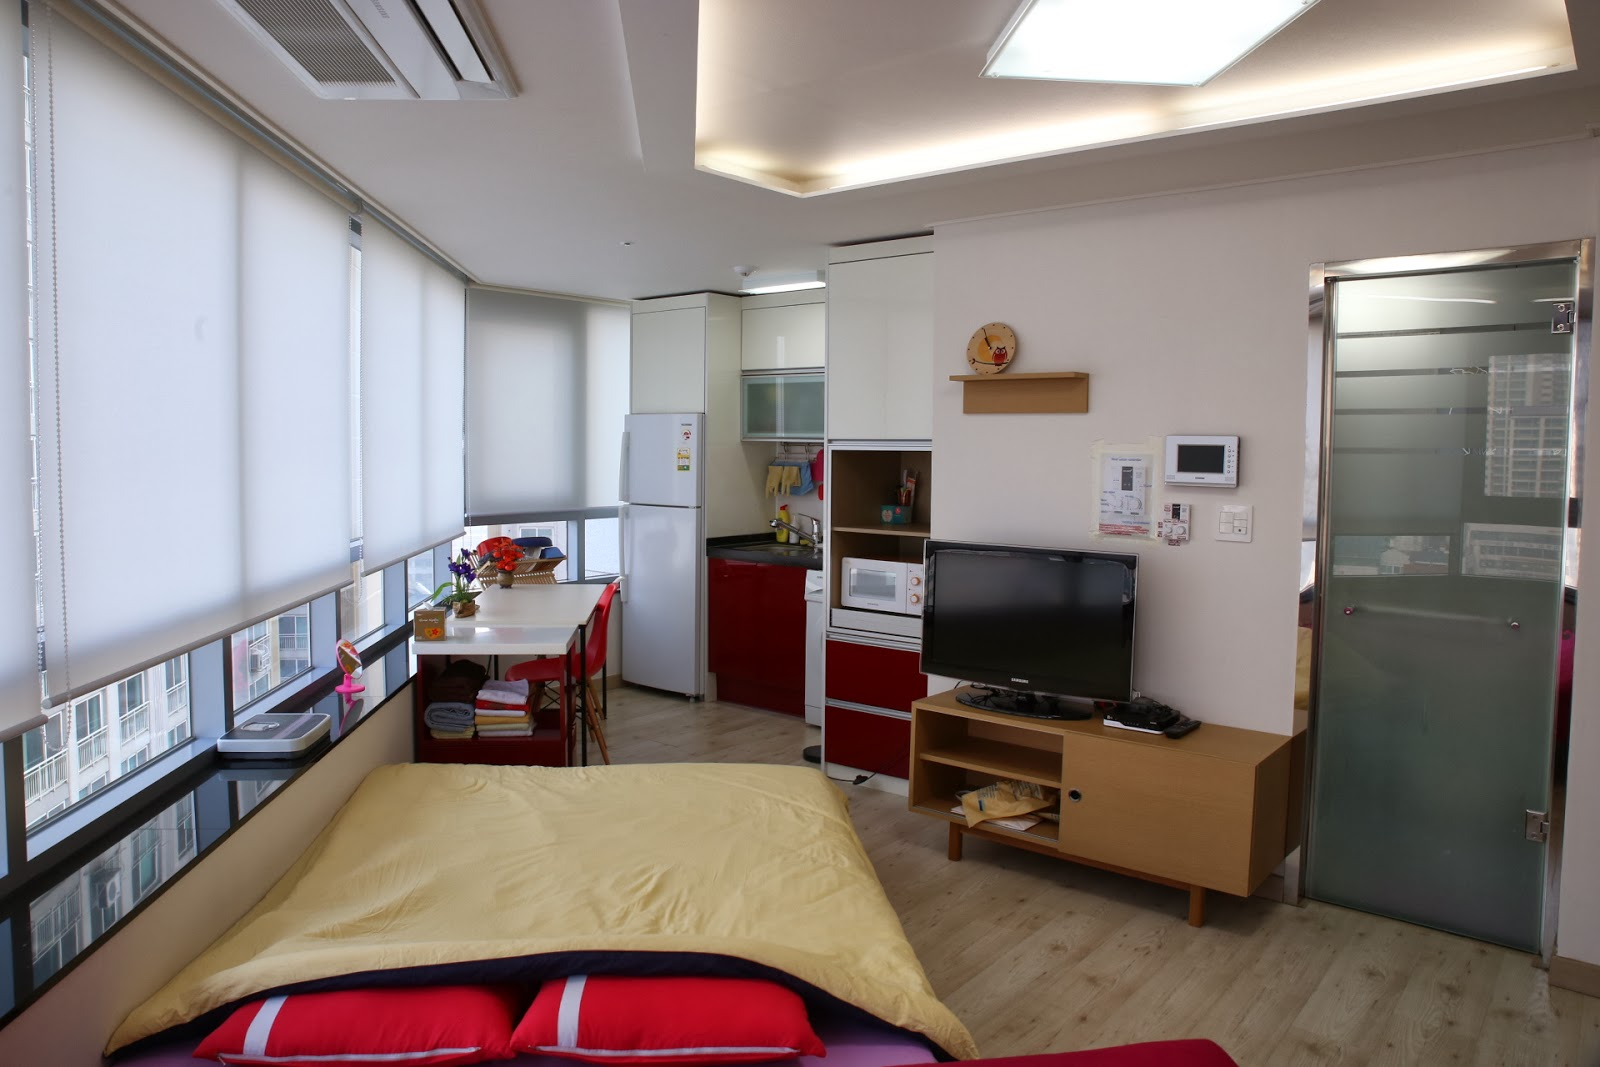 Do You Have A Plan To Visit Seoul For Sightseeing Or Business Can Rent Studio Apartment In Center Of Short Term Long